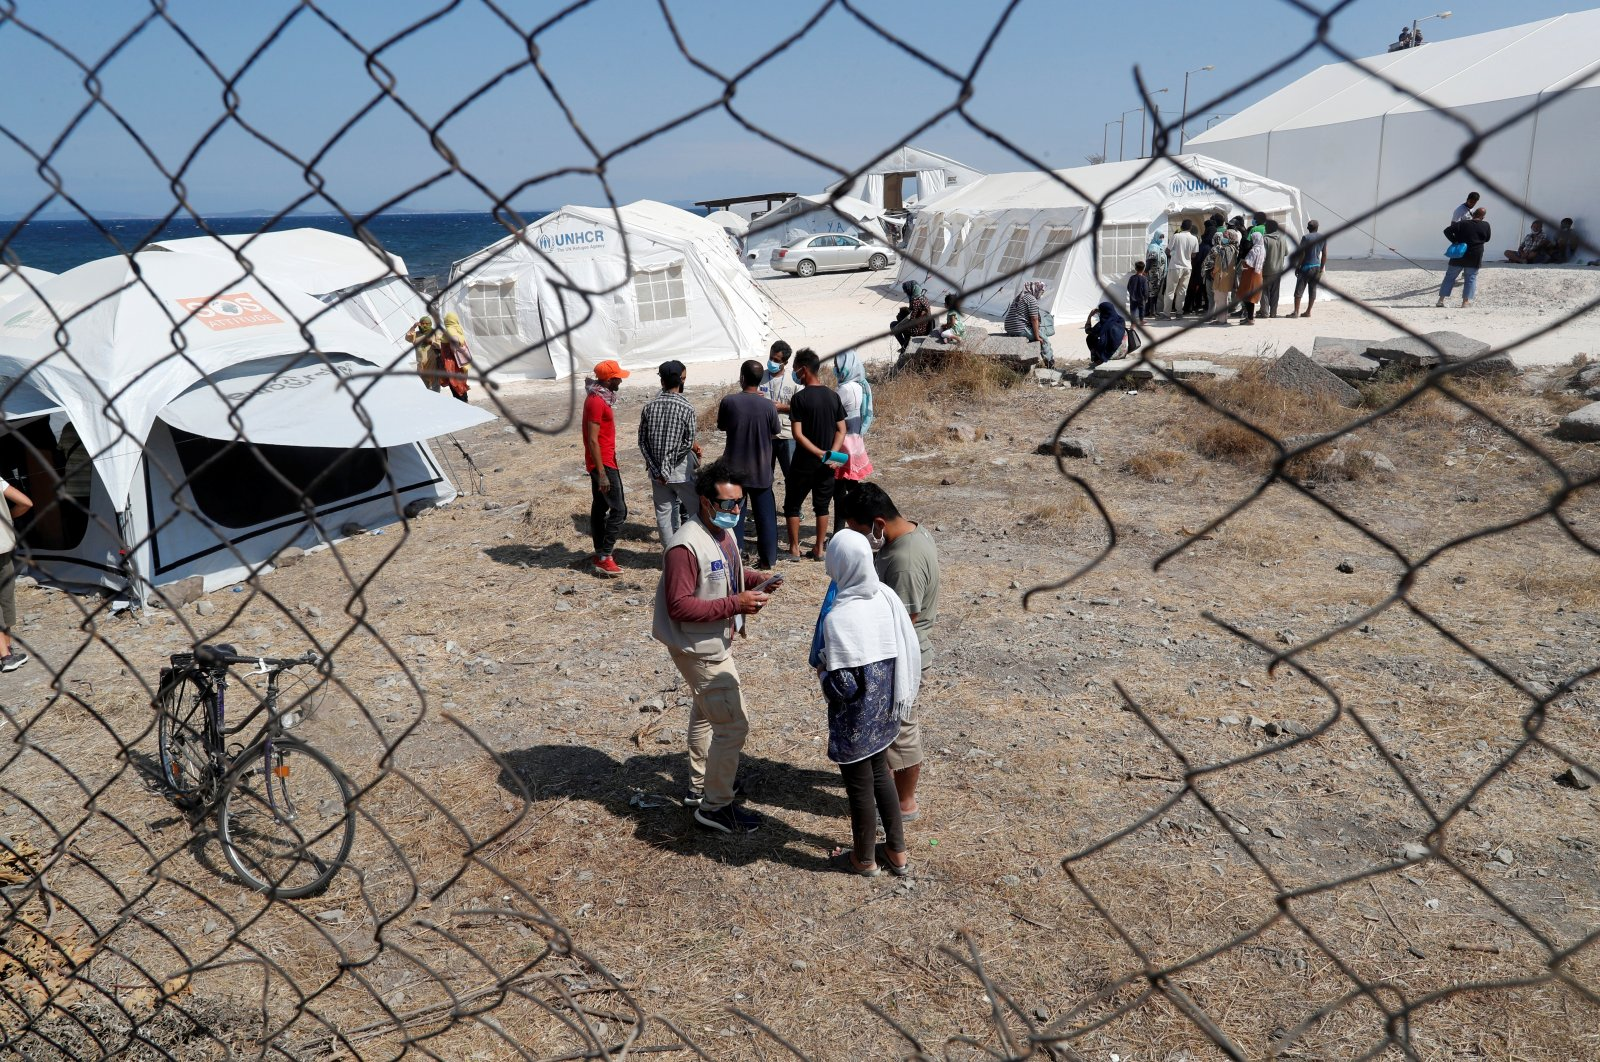 Aid workers and residents are seen at the new temporary camp for migrants and refugees, on the island of Lesbos, Sept. 21, 2020. (REUTERS Photo)